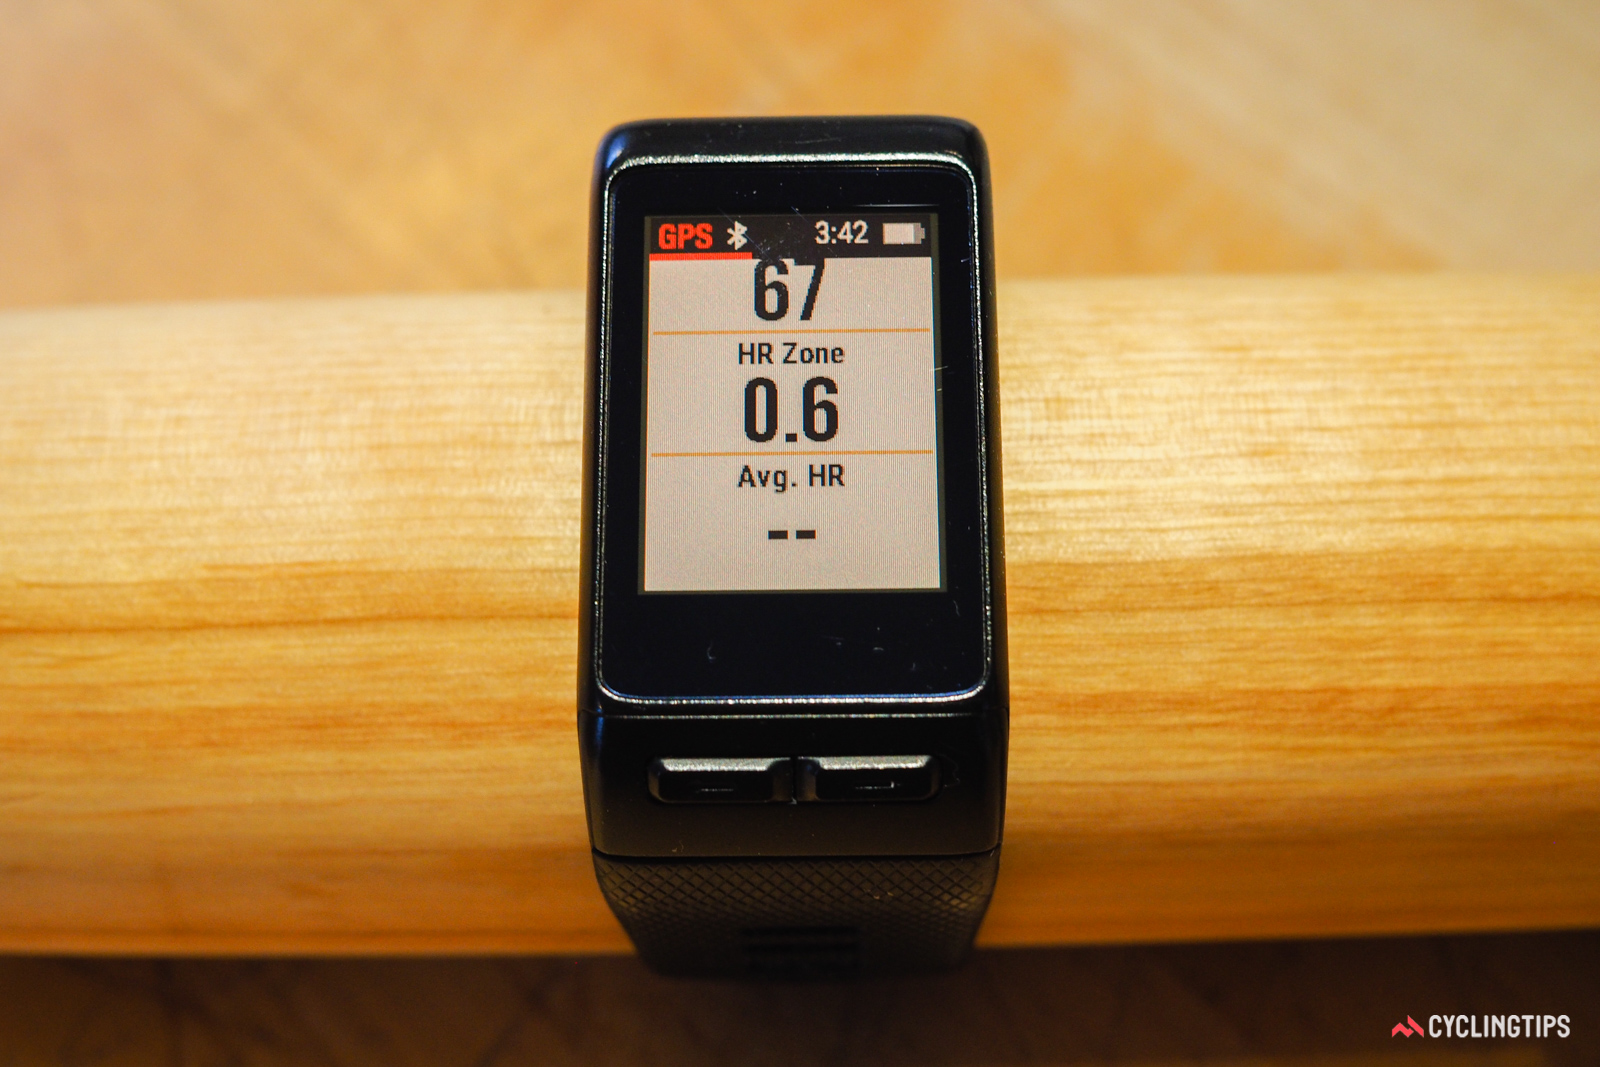 I would have preferred that the data be organized differently on the Garmin Vivoactive HR, but so be it. In reality, the fact that the data screen is on your wrist means you aren't going to be looking at it as often as you would with a handlebar-mounted computer, anyway.